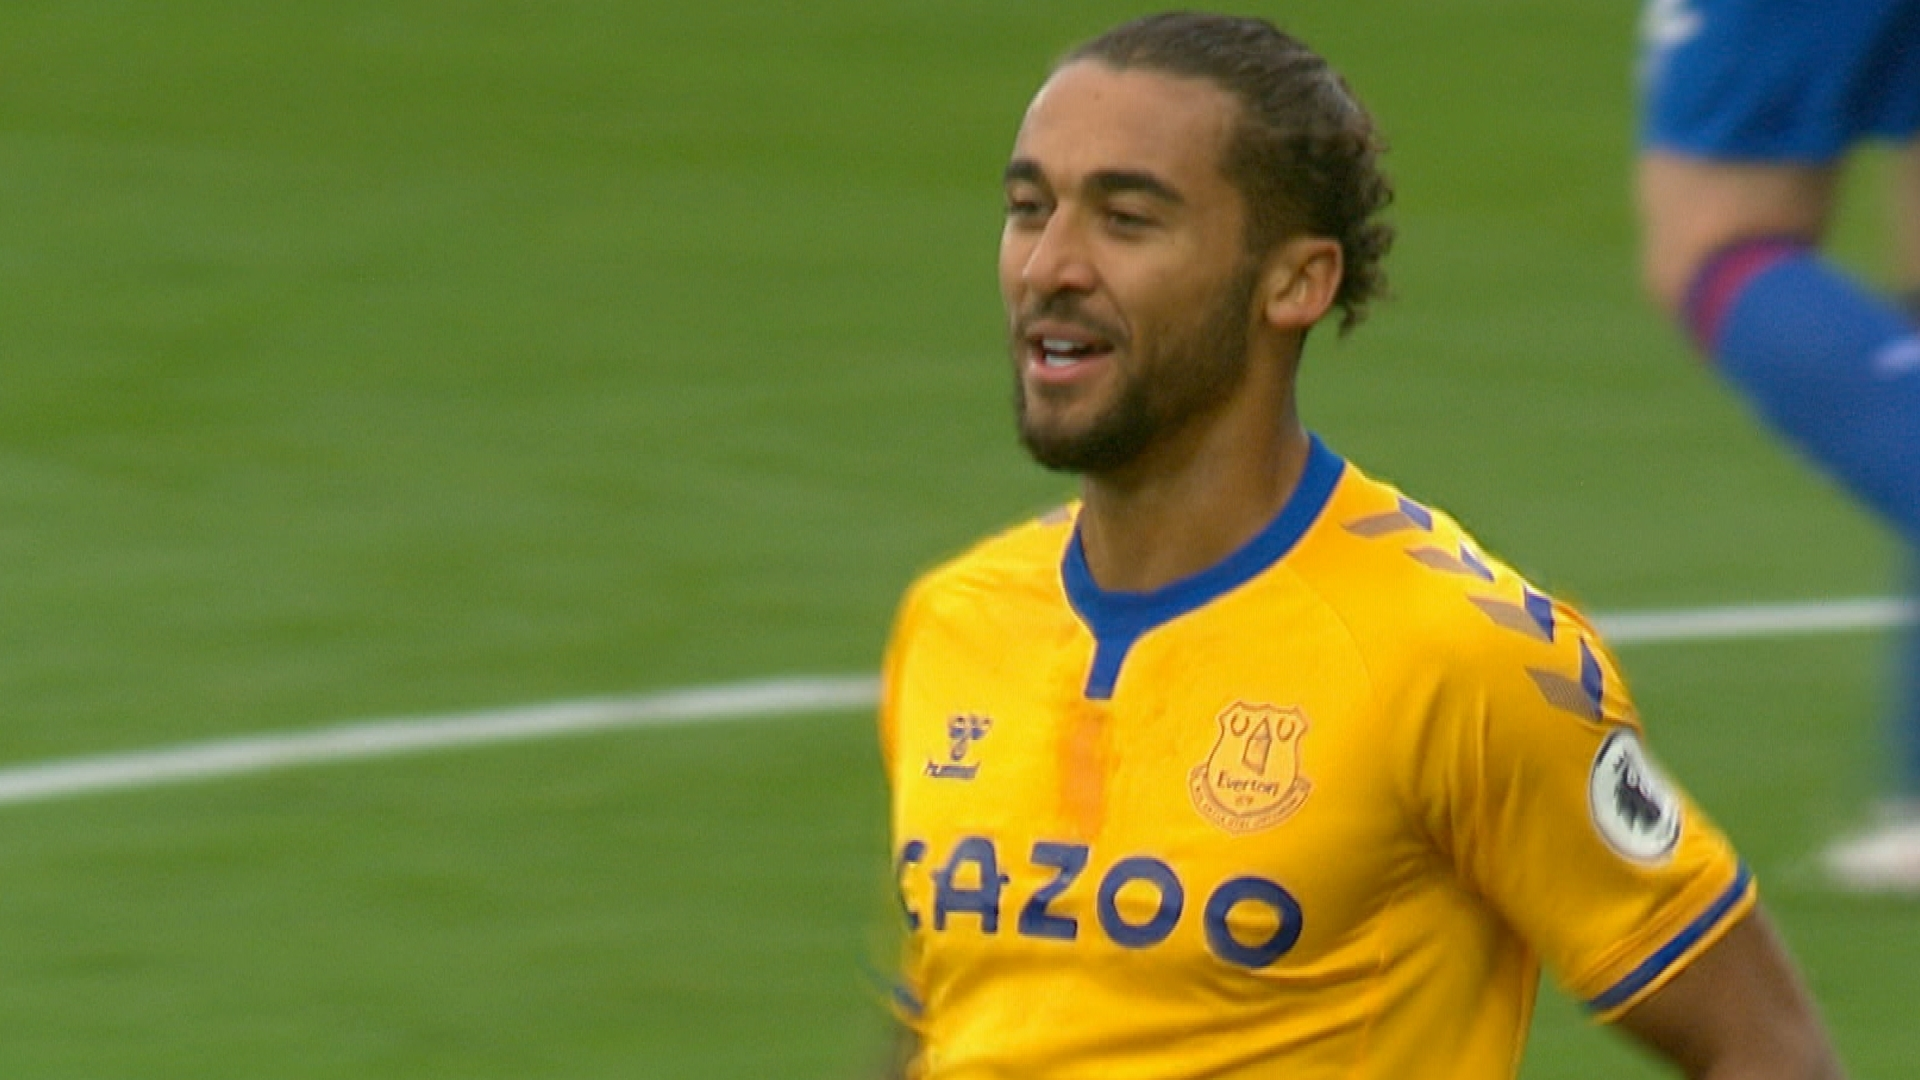 Dominic Calvert-Lewin gets Everton early lead v. Crystal Palace   NBC Sports